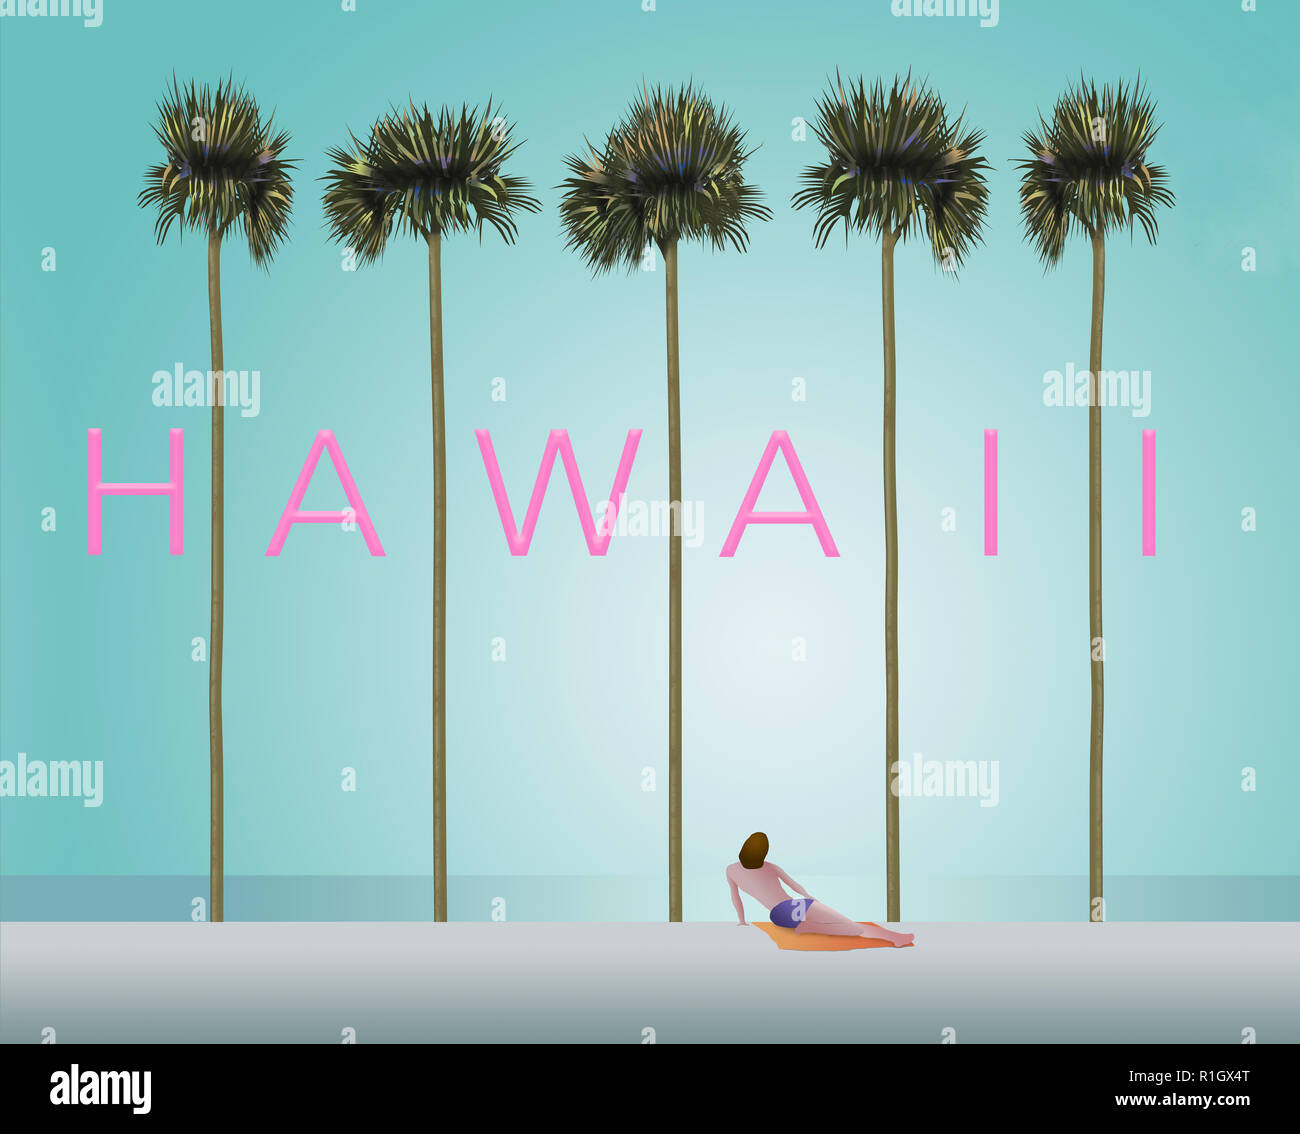 Tall palm trees and a sunbather on a white sand beach set the scene for the vacation destination Hawaii. This is an illustration. - Stock Image